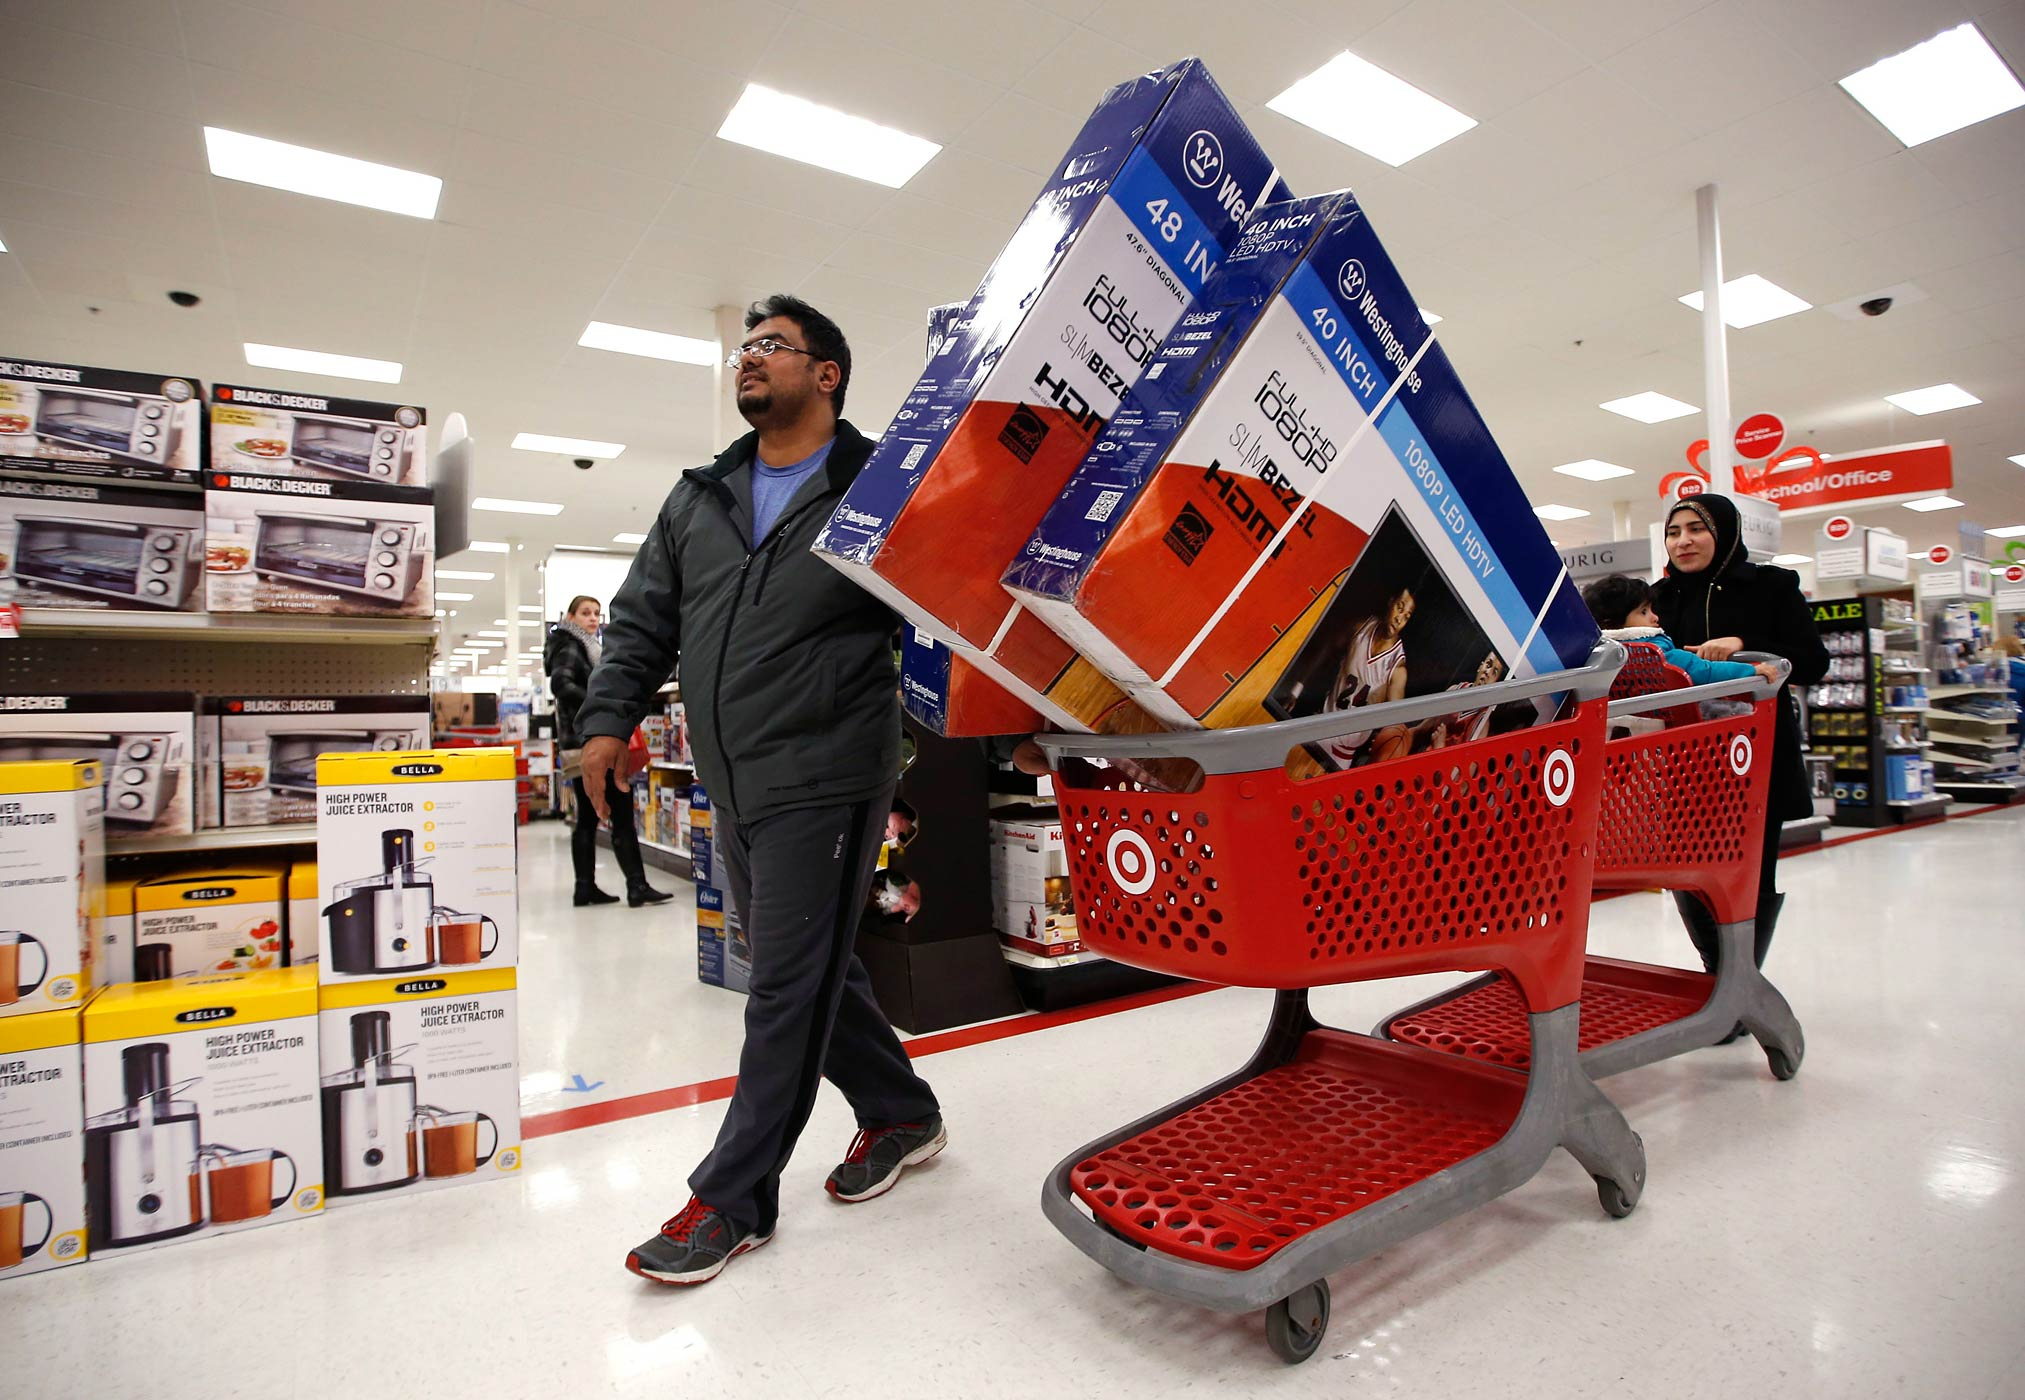 Shoppers patronize a Target store just after midnight on Black Friday, Nov. 28, 2014, in South Portland, Maine.